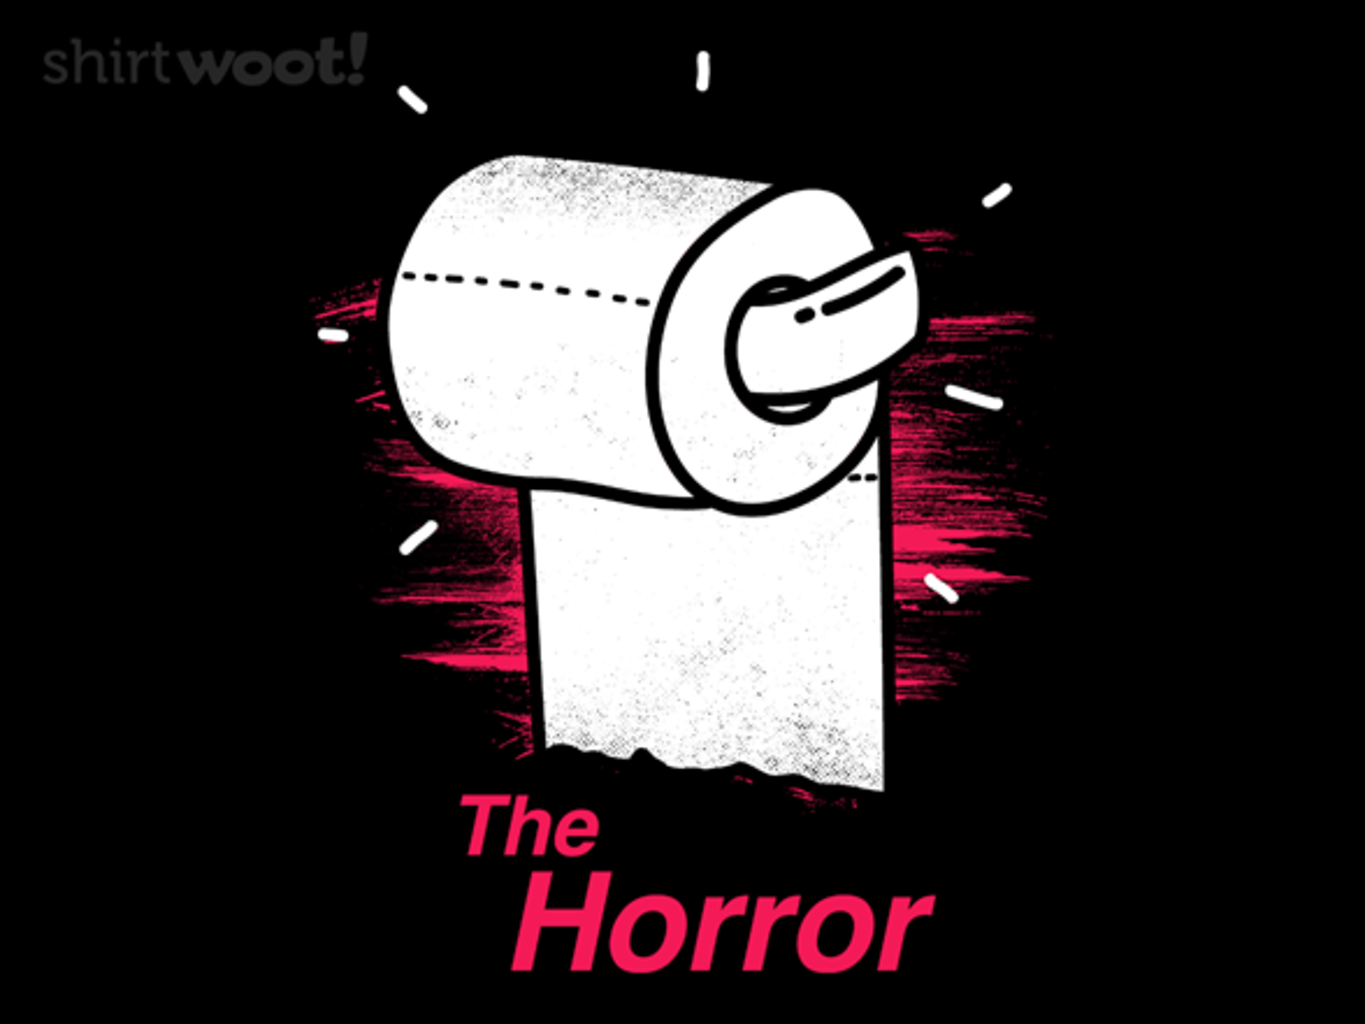 Woot!: The Horror